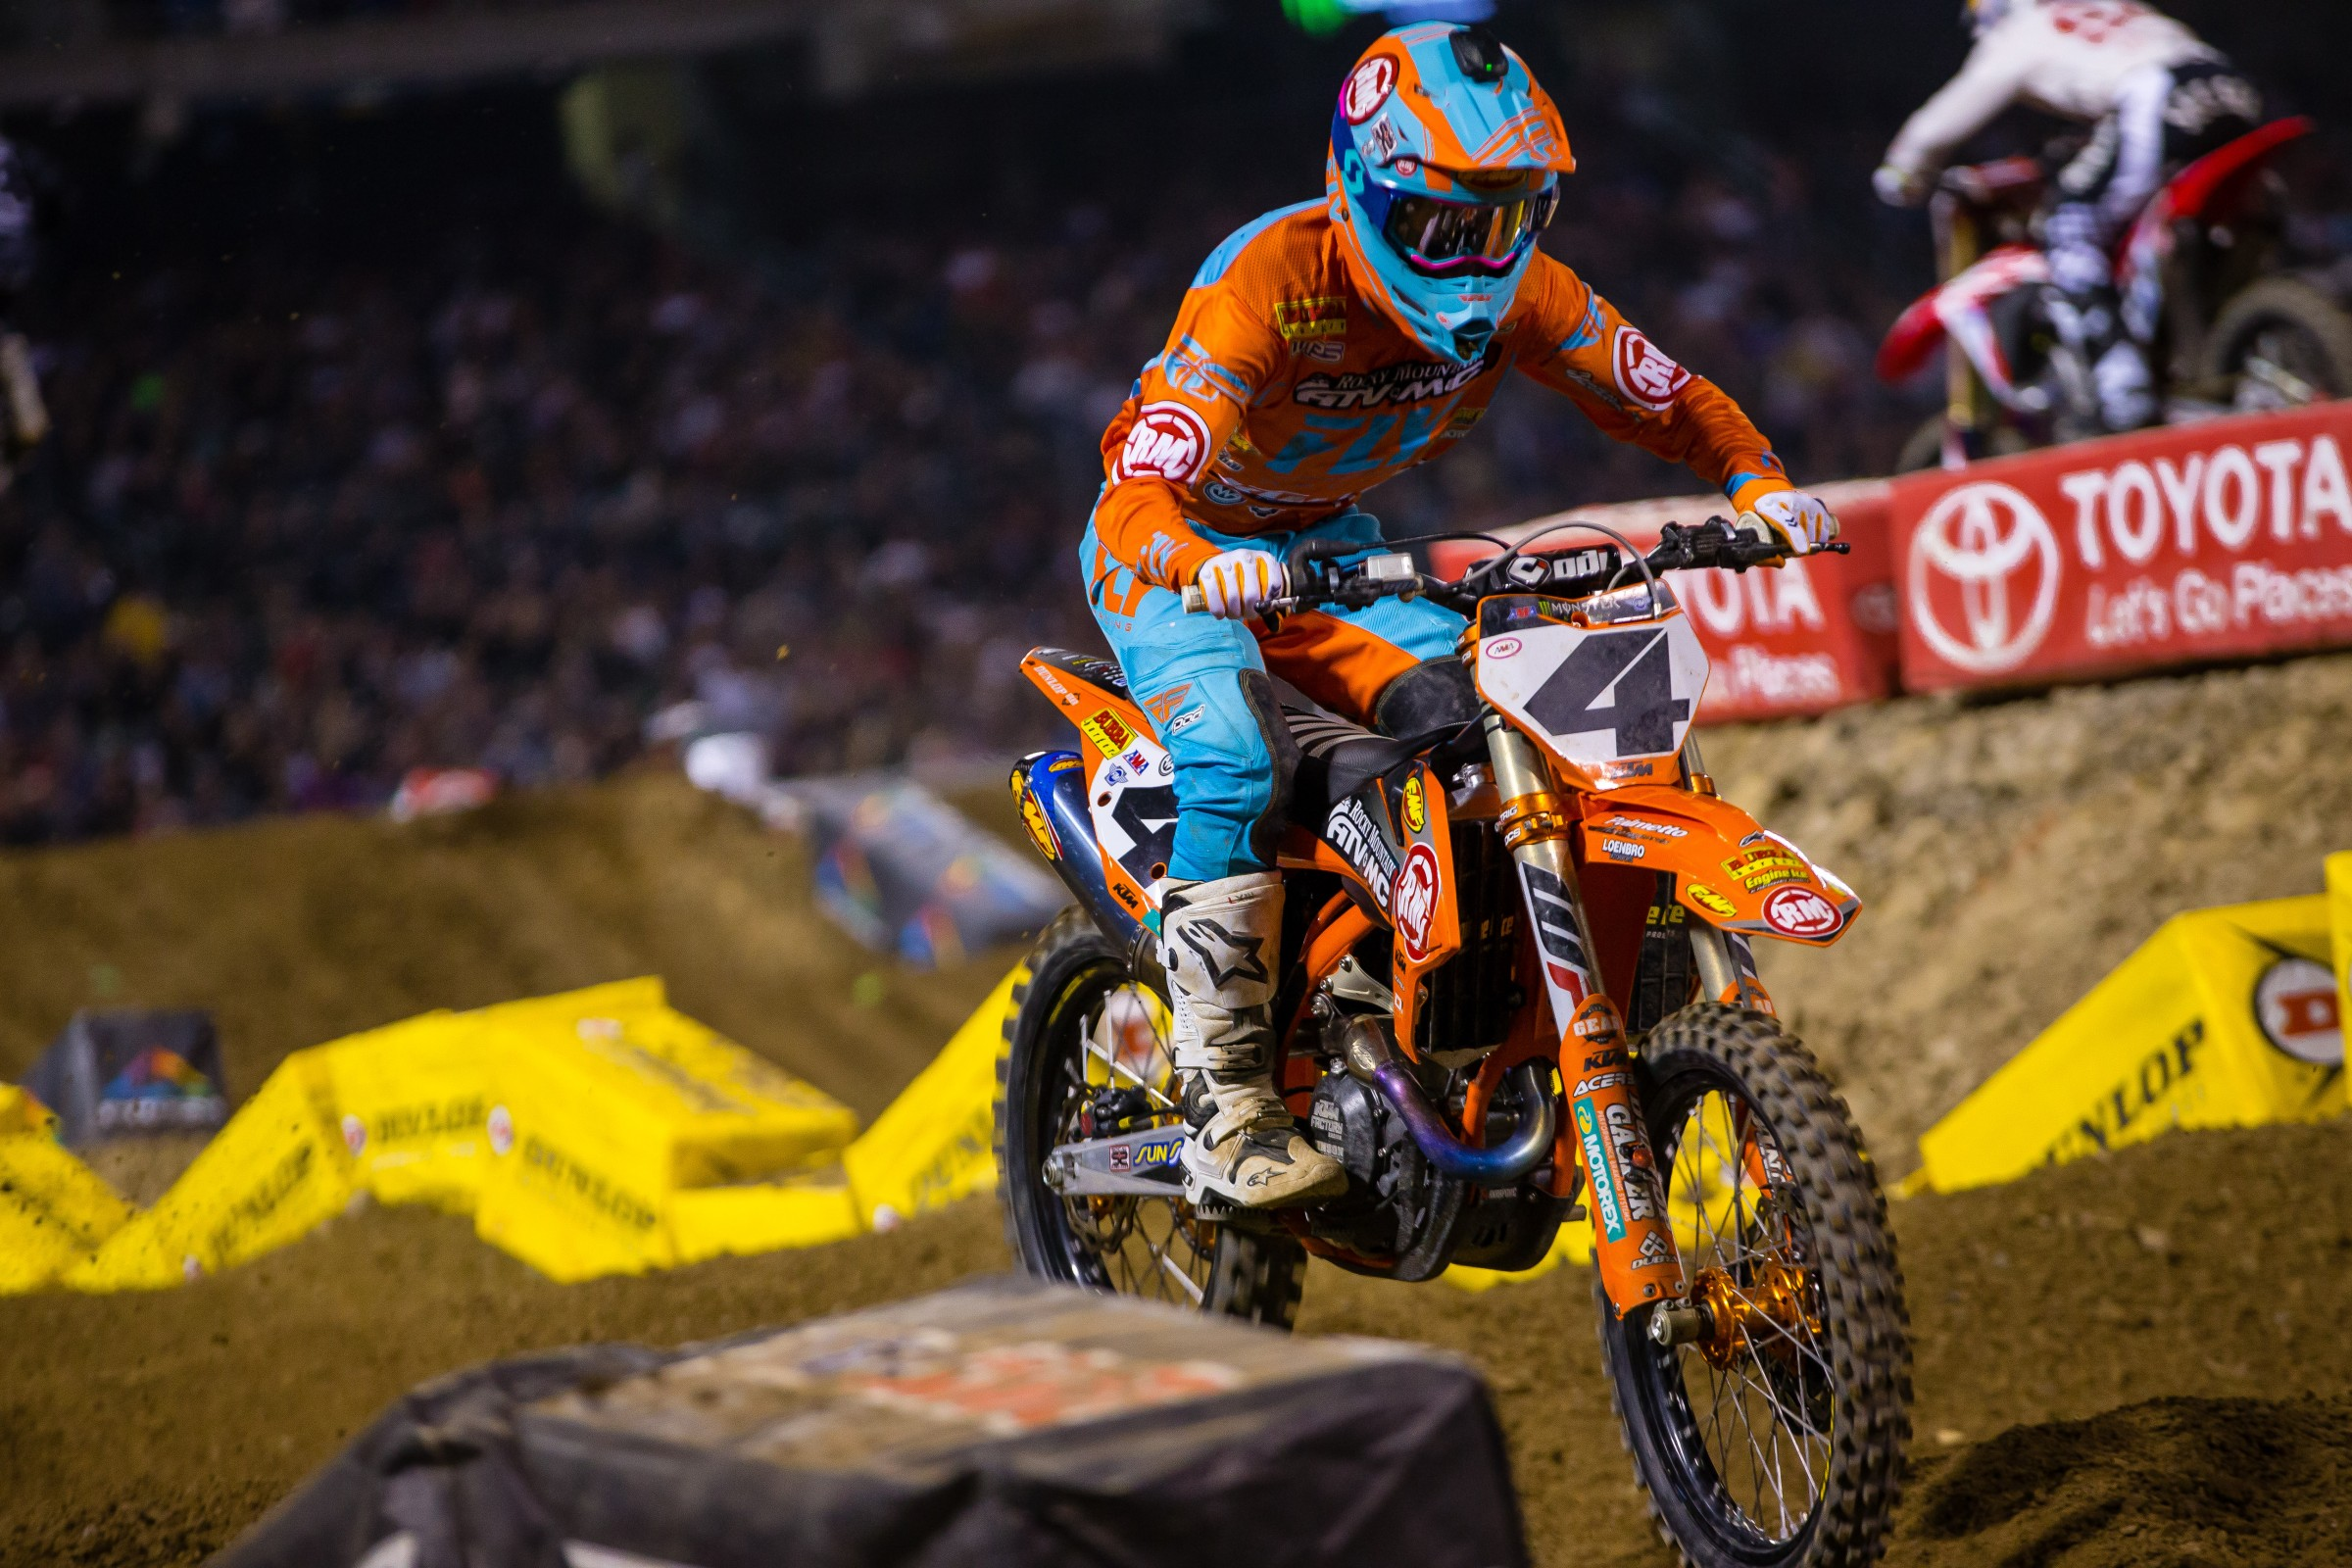 Baggett had his best night of the season so far, landing on the podium last weekend.